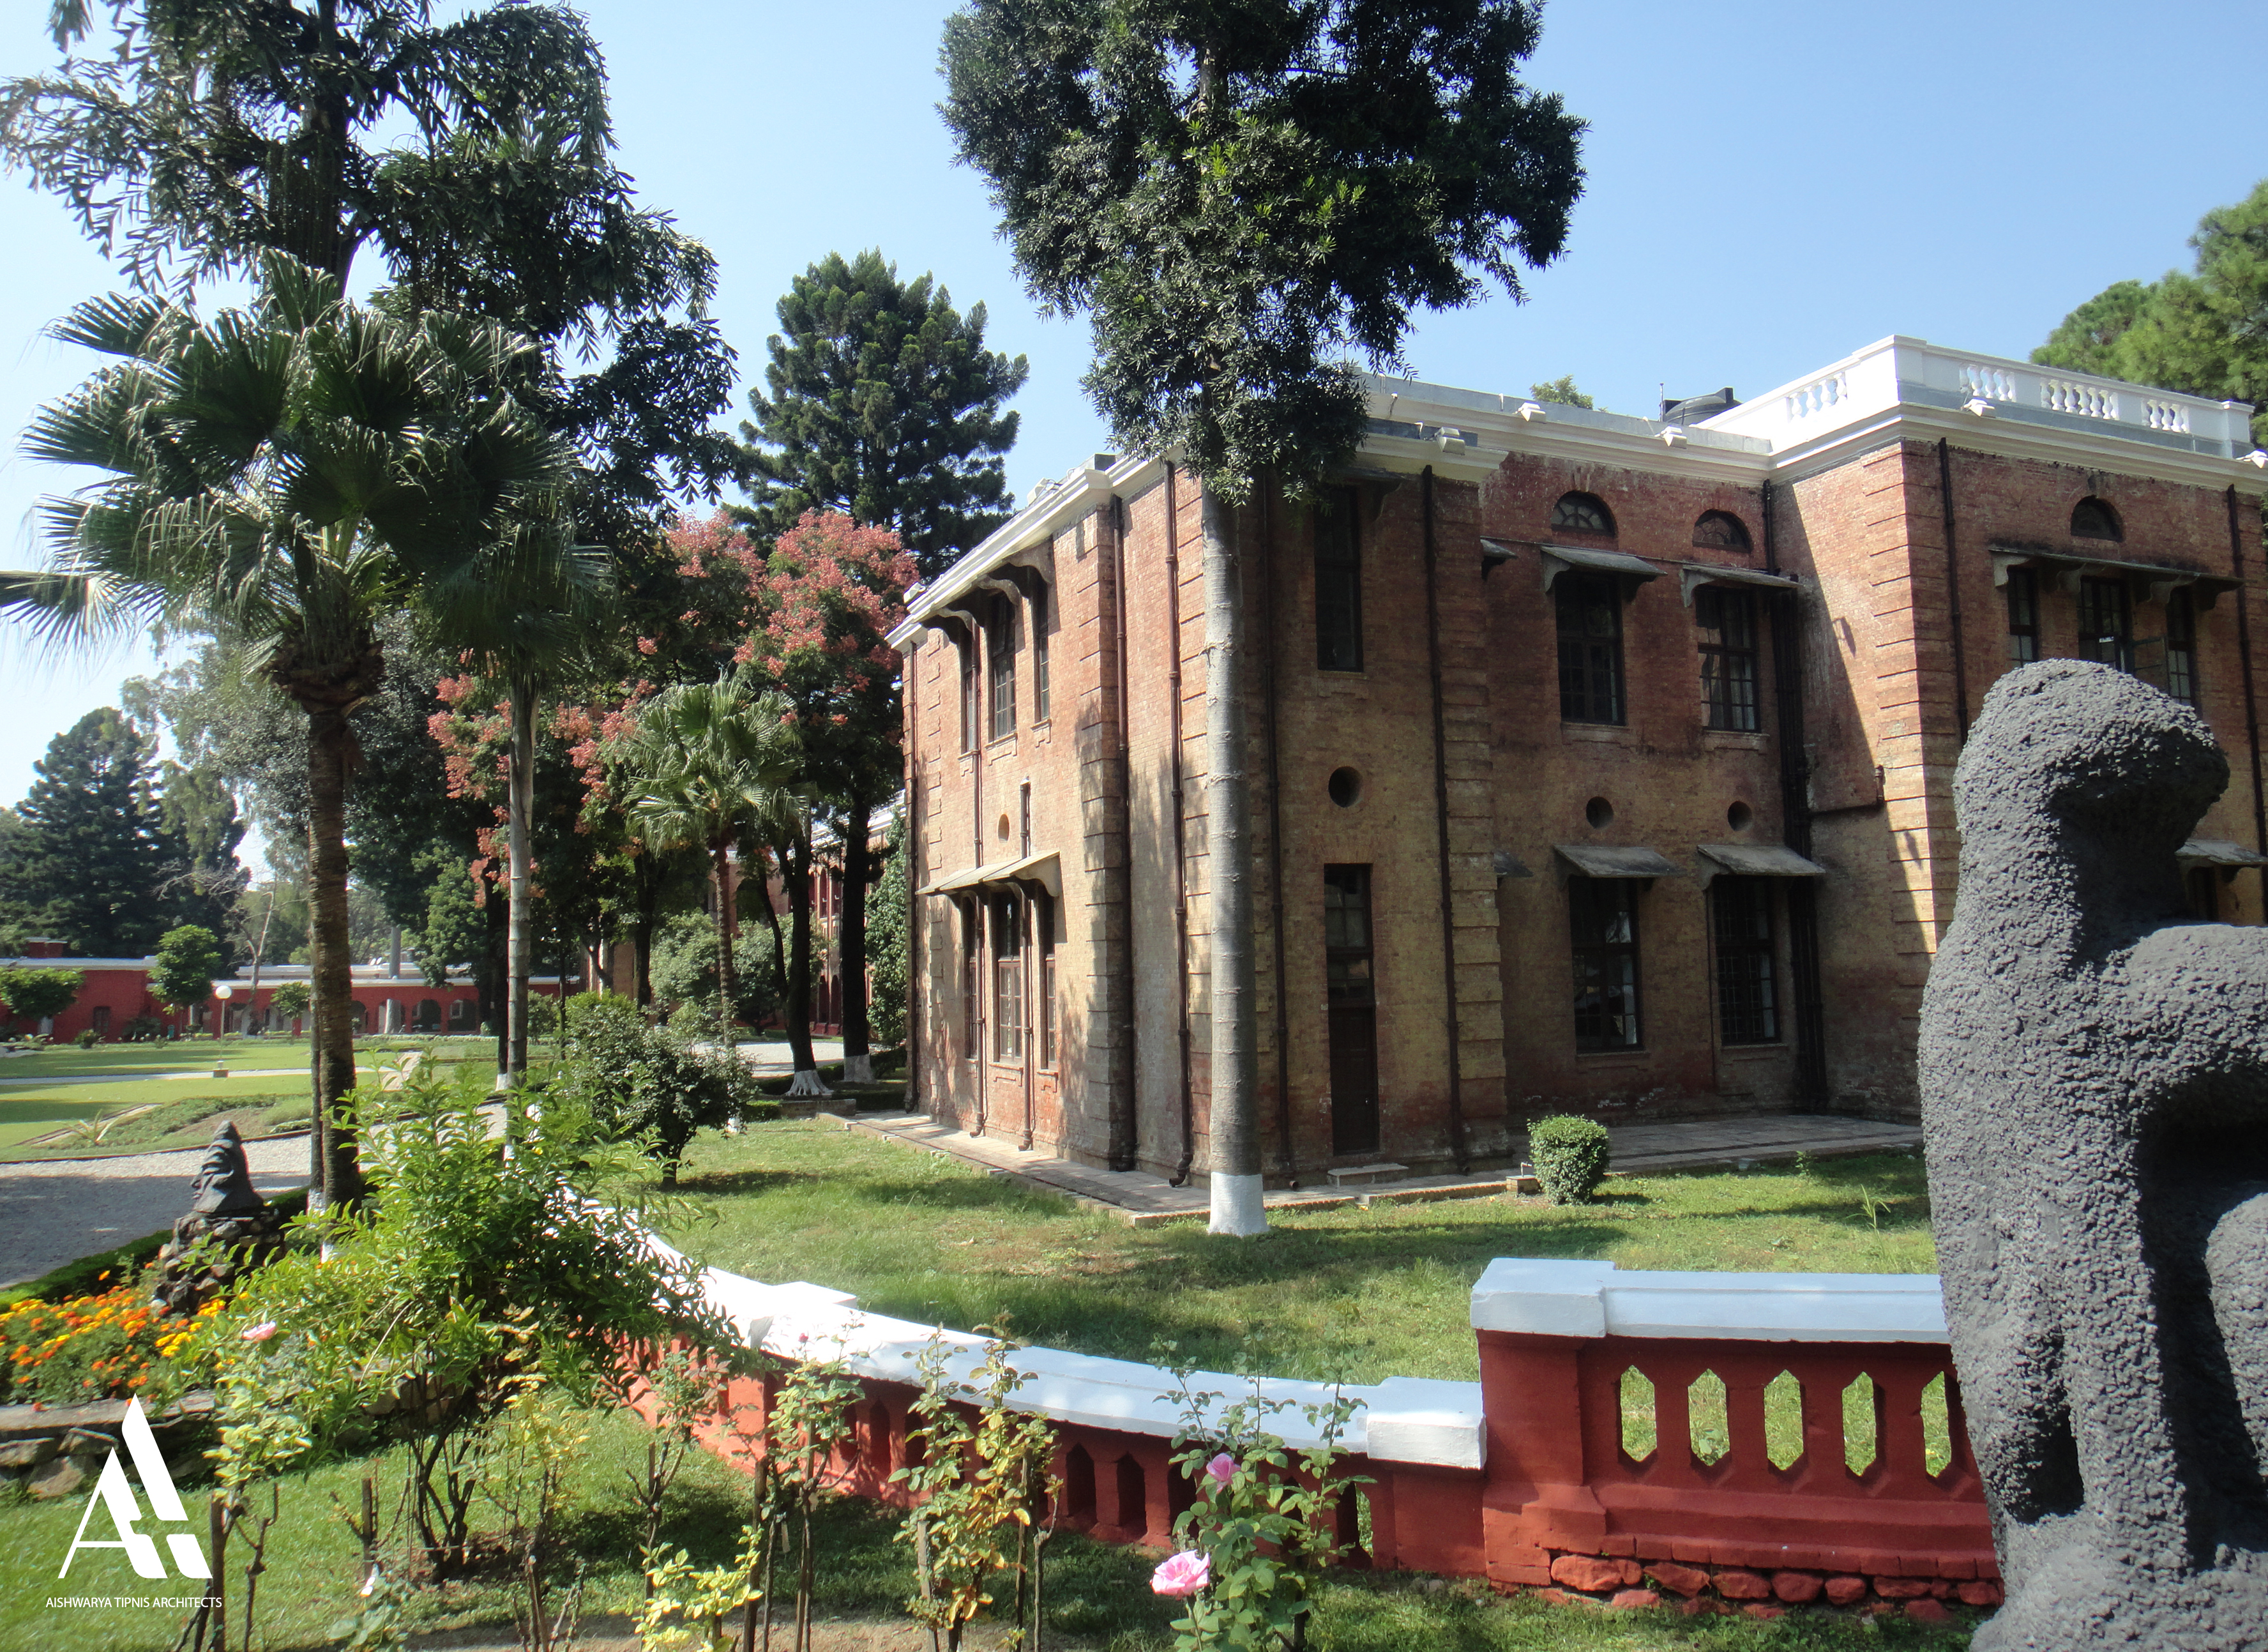 Restoration of the Main Building of the Doon School, Dehradun